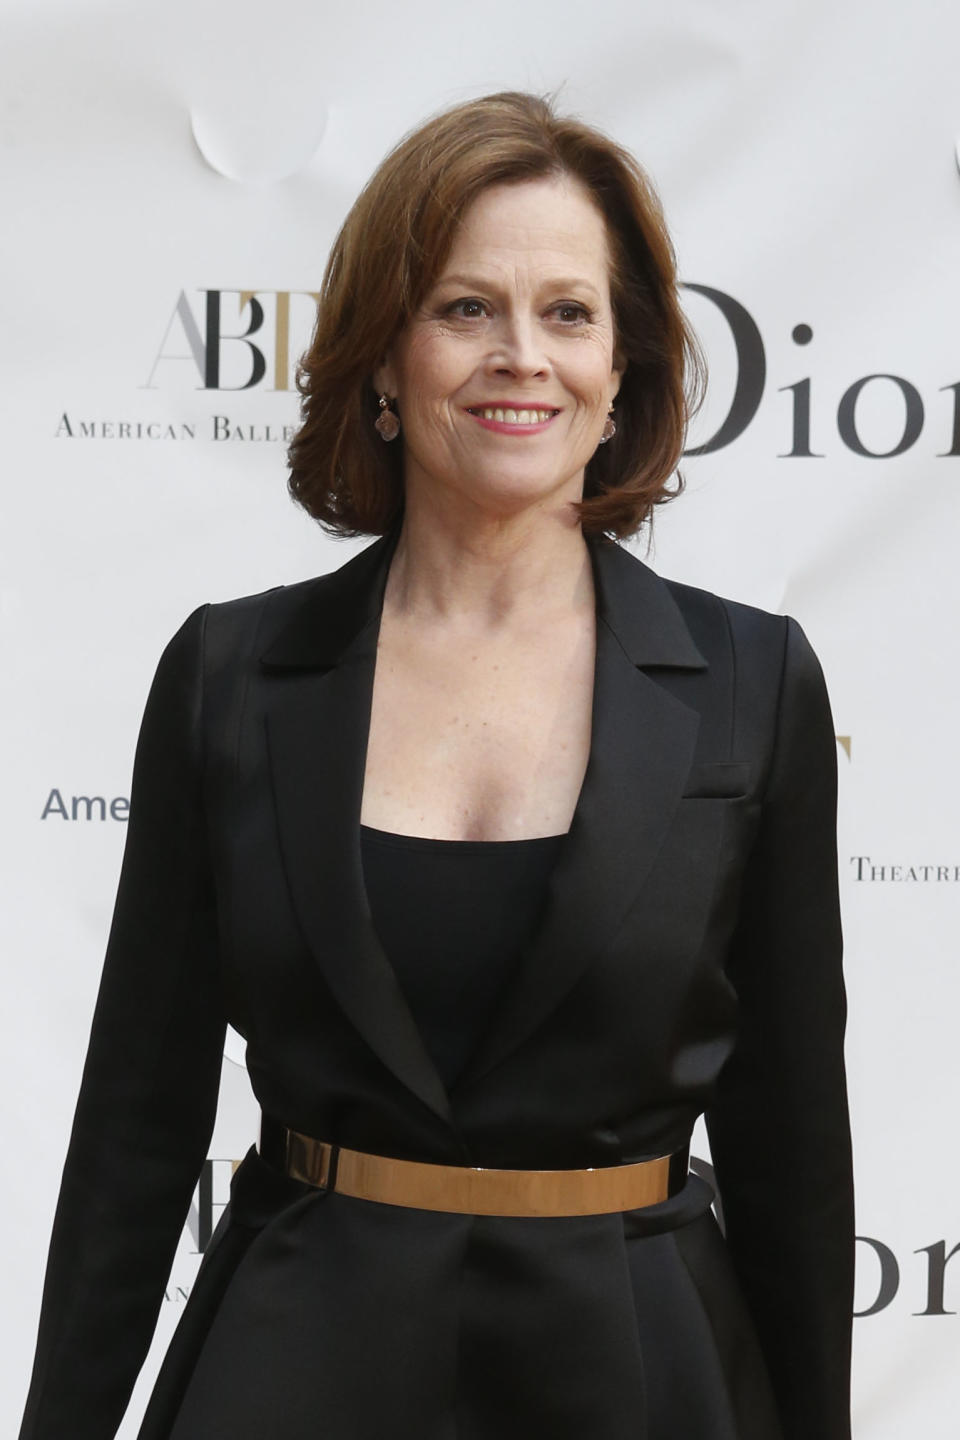 Actress Sigourney Weaver arrives for the American Ballet Theatre Spring Gala at the Metropolitan Opera House, Monday, May 13, 2013 in New York. (Photo by Jason DeCrow/Invision/AP)